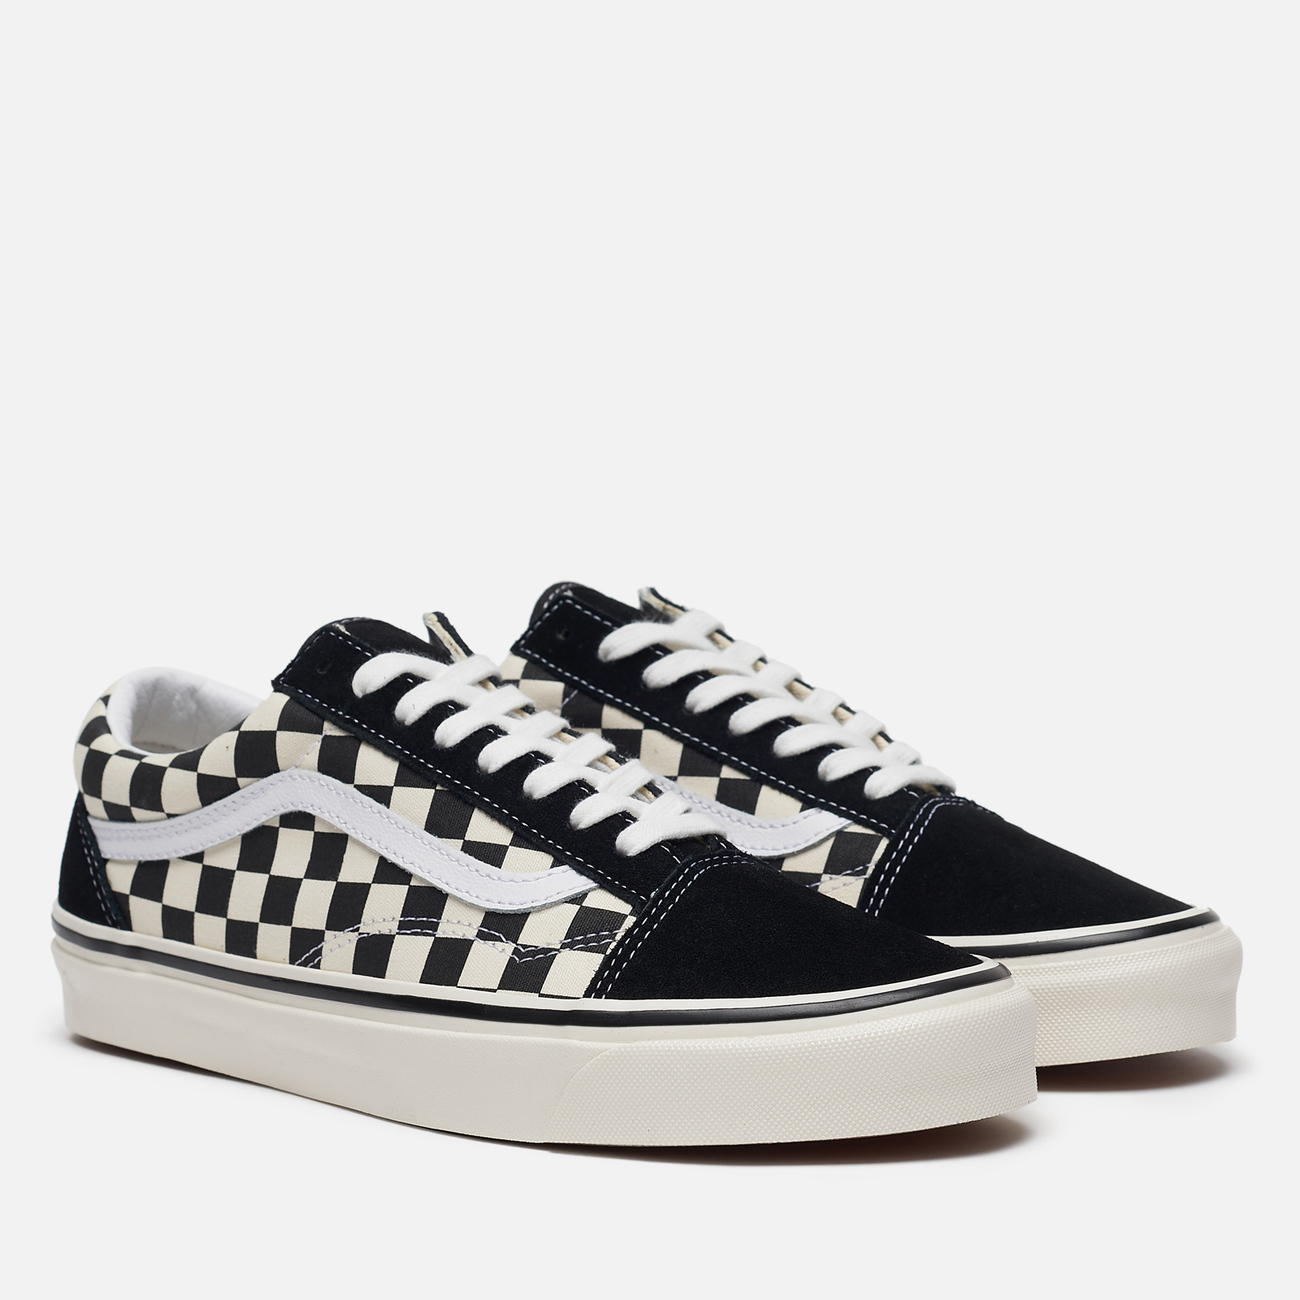 Мужские кеды Vans Old Skool 36 DX Anaheim Factory Black/Check